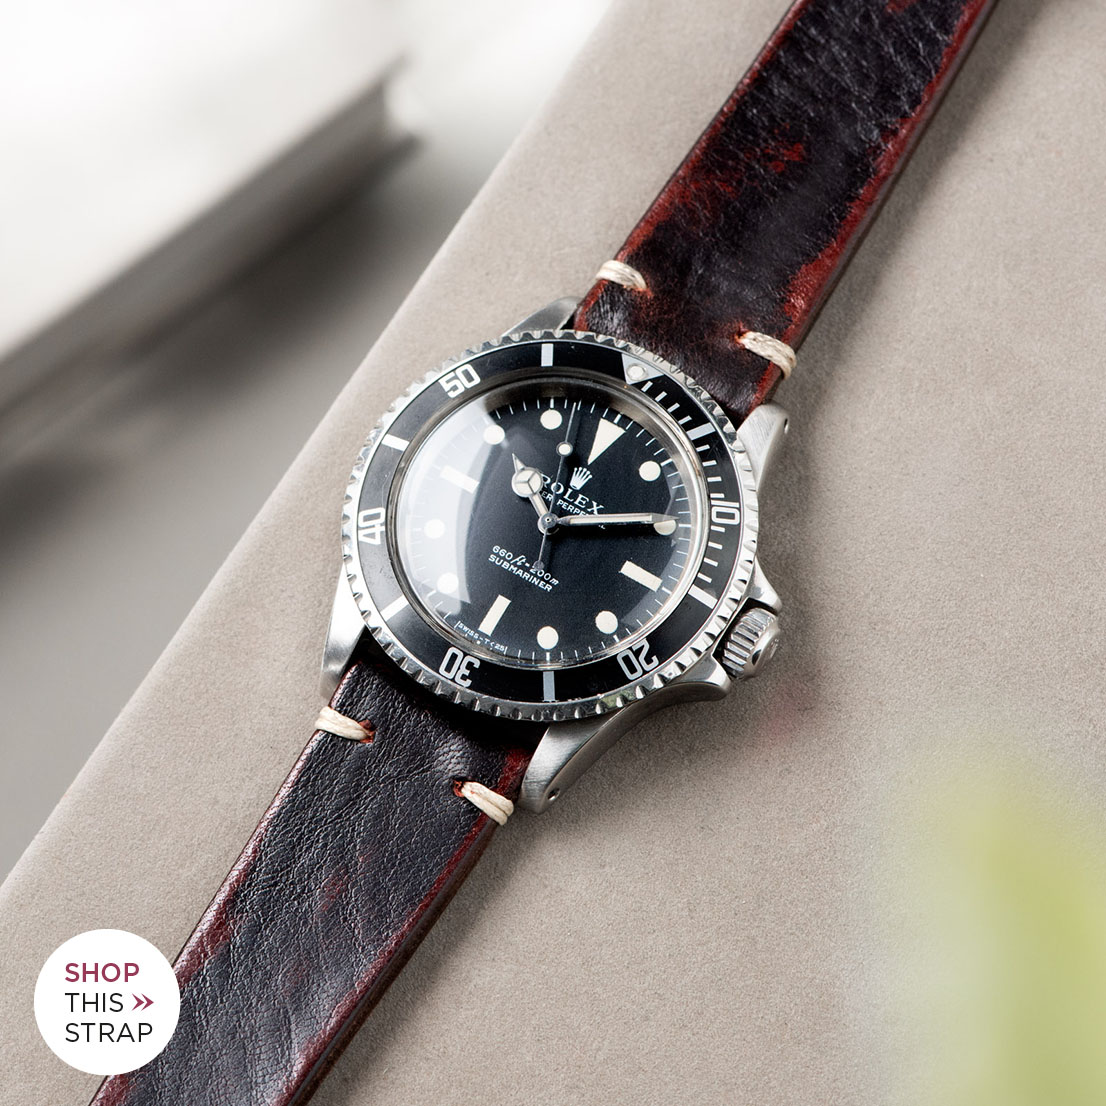 Bulang and Sons_Strap Guide_Rolex 5513 Submariner_DIABLO BLACK LEATHER WATCH STRAP